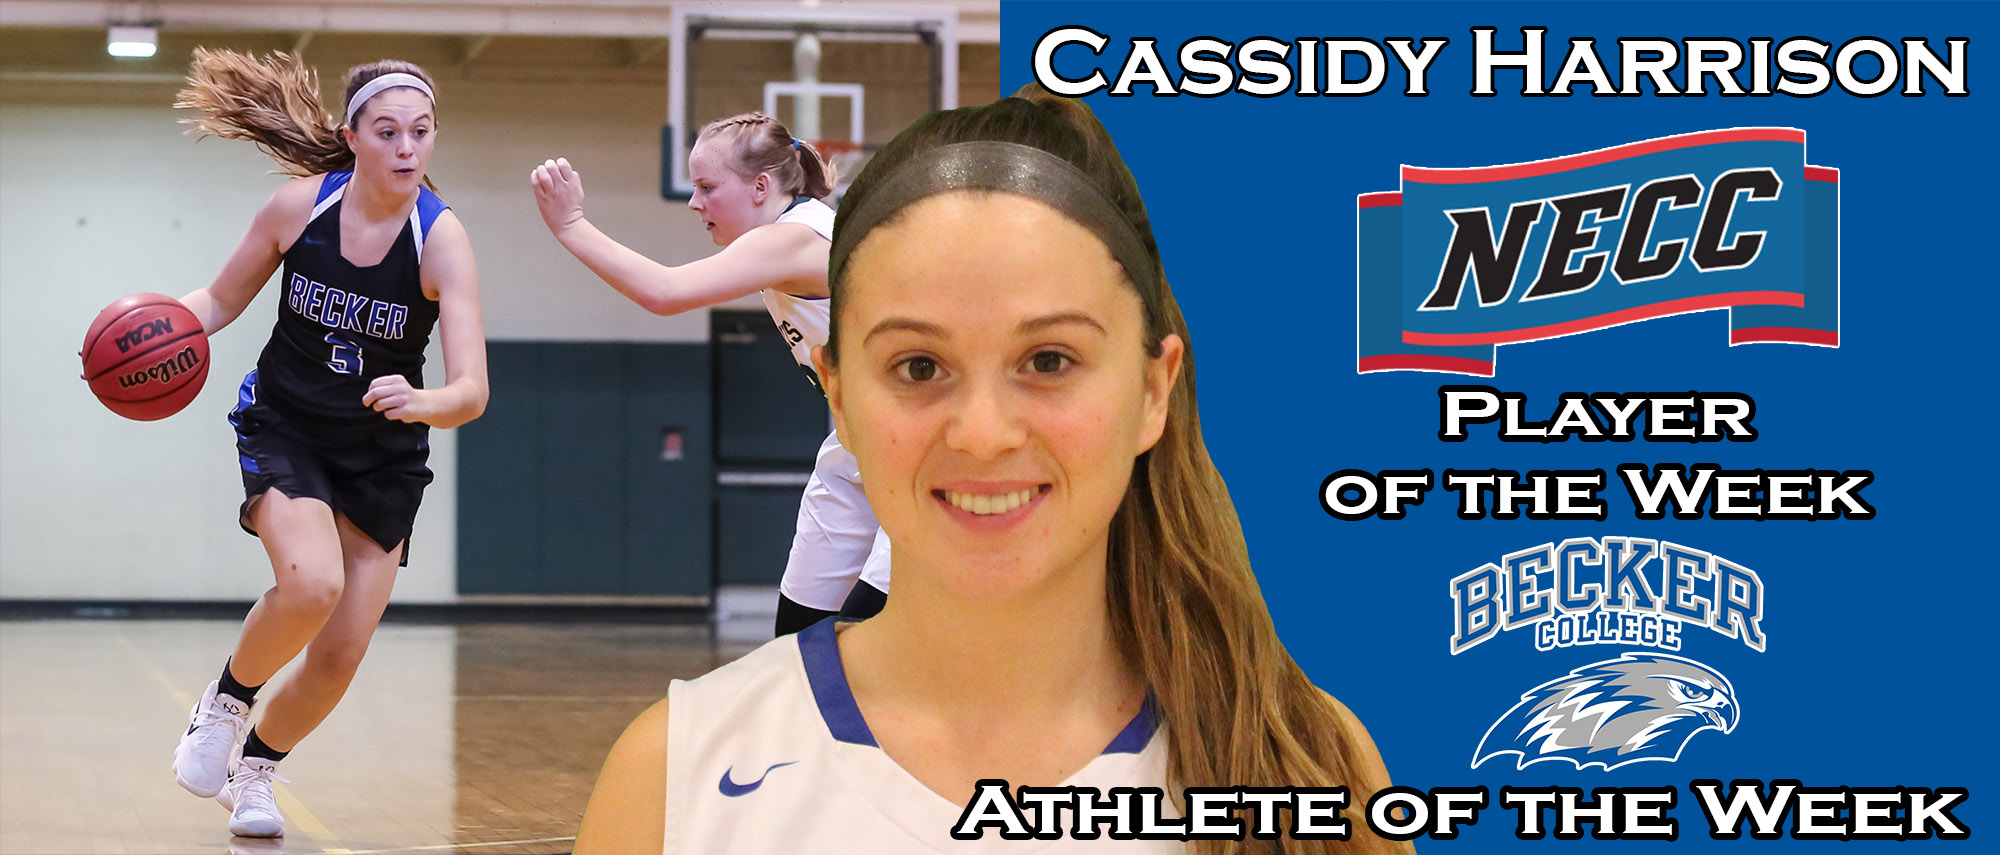 Cassidy Harrison - Player of the Week